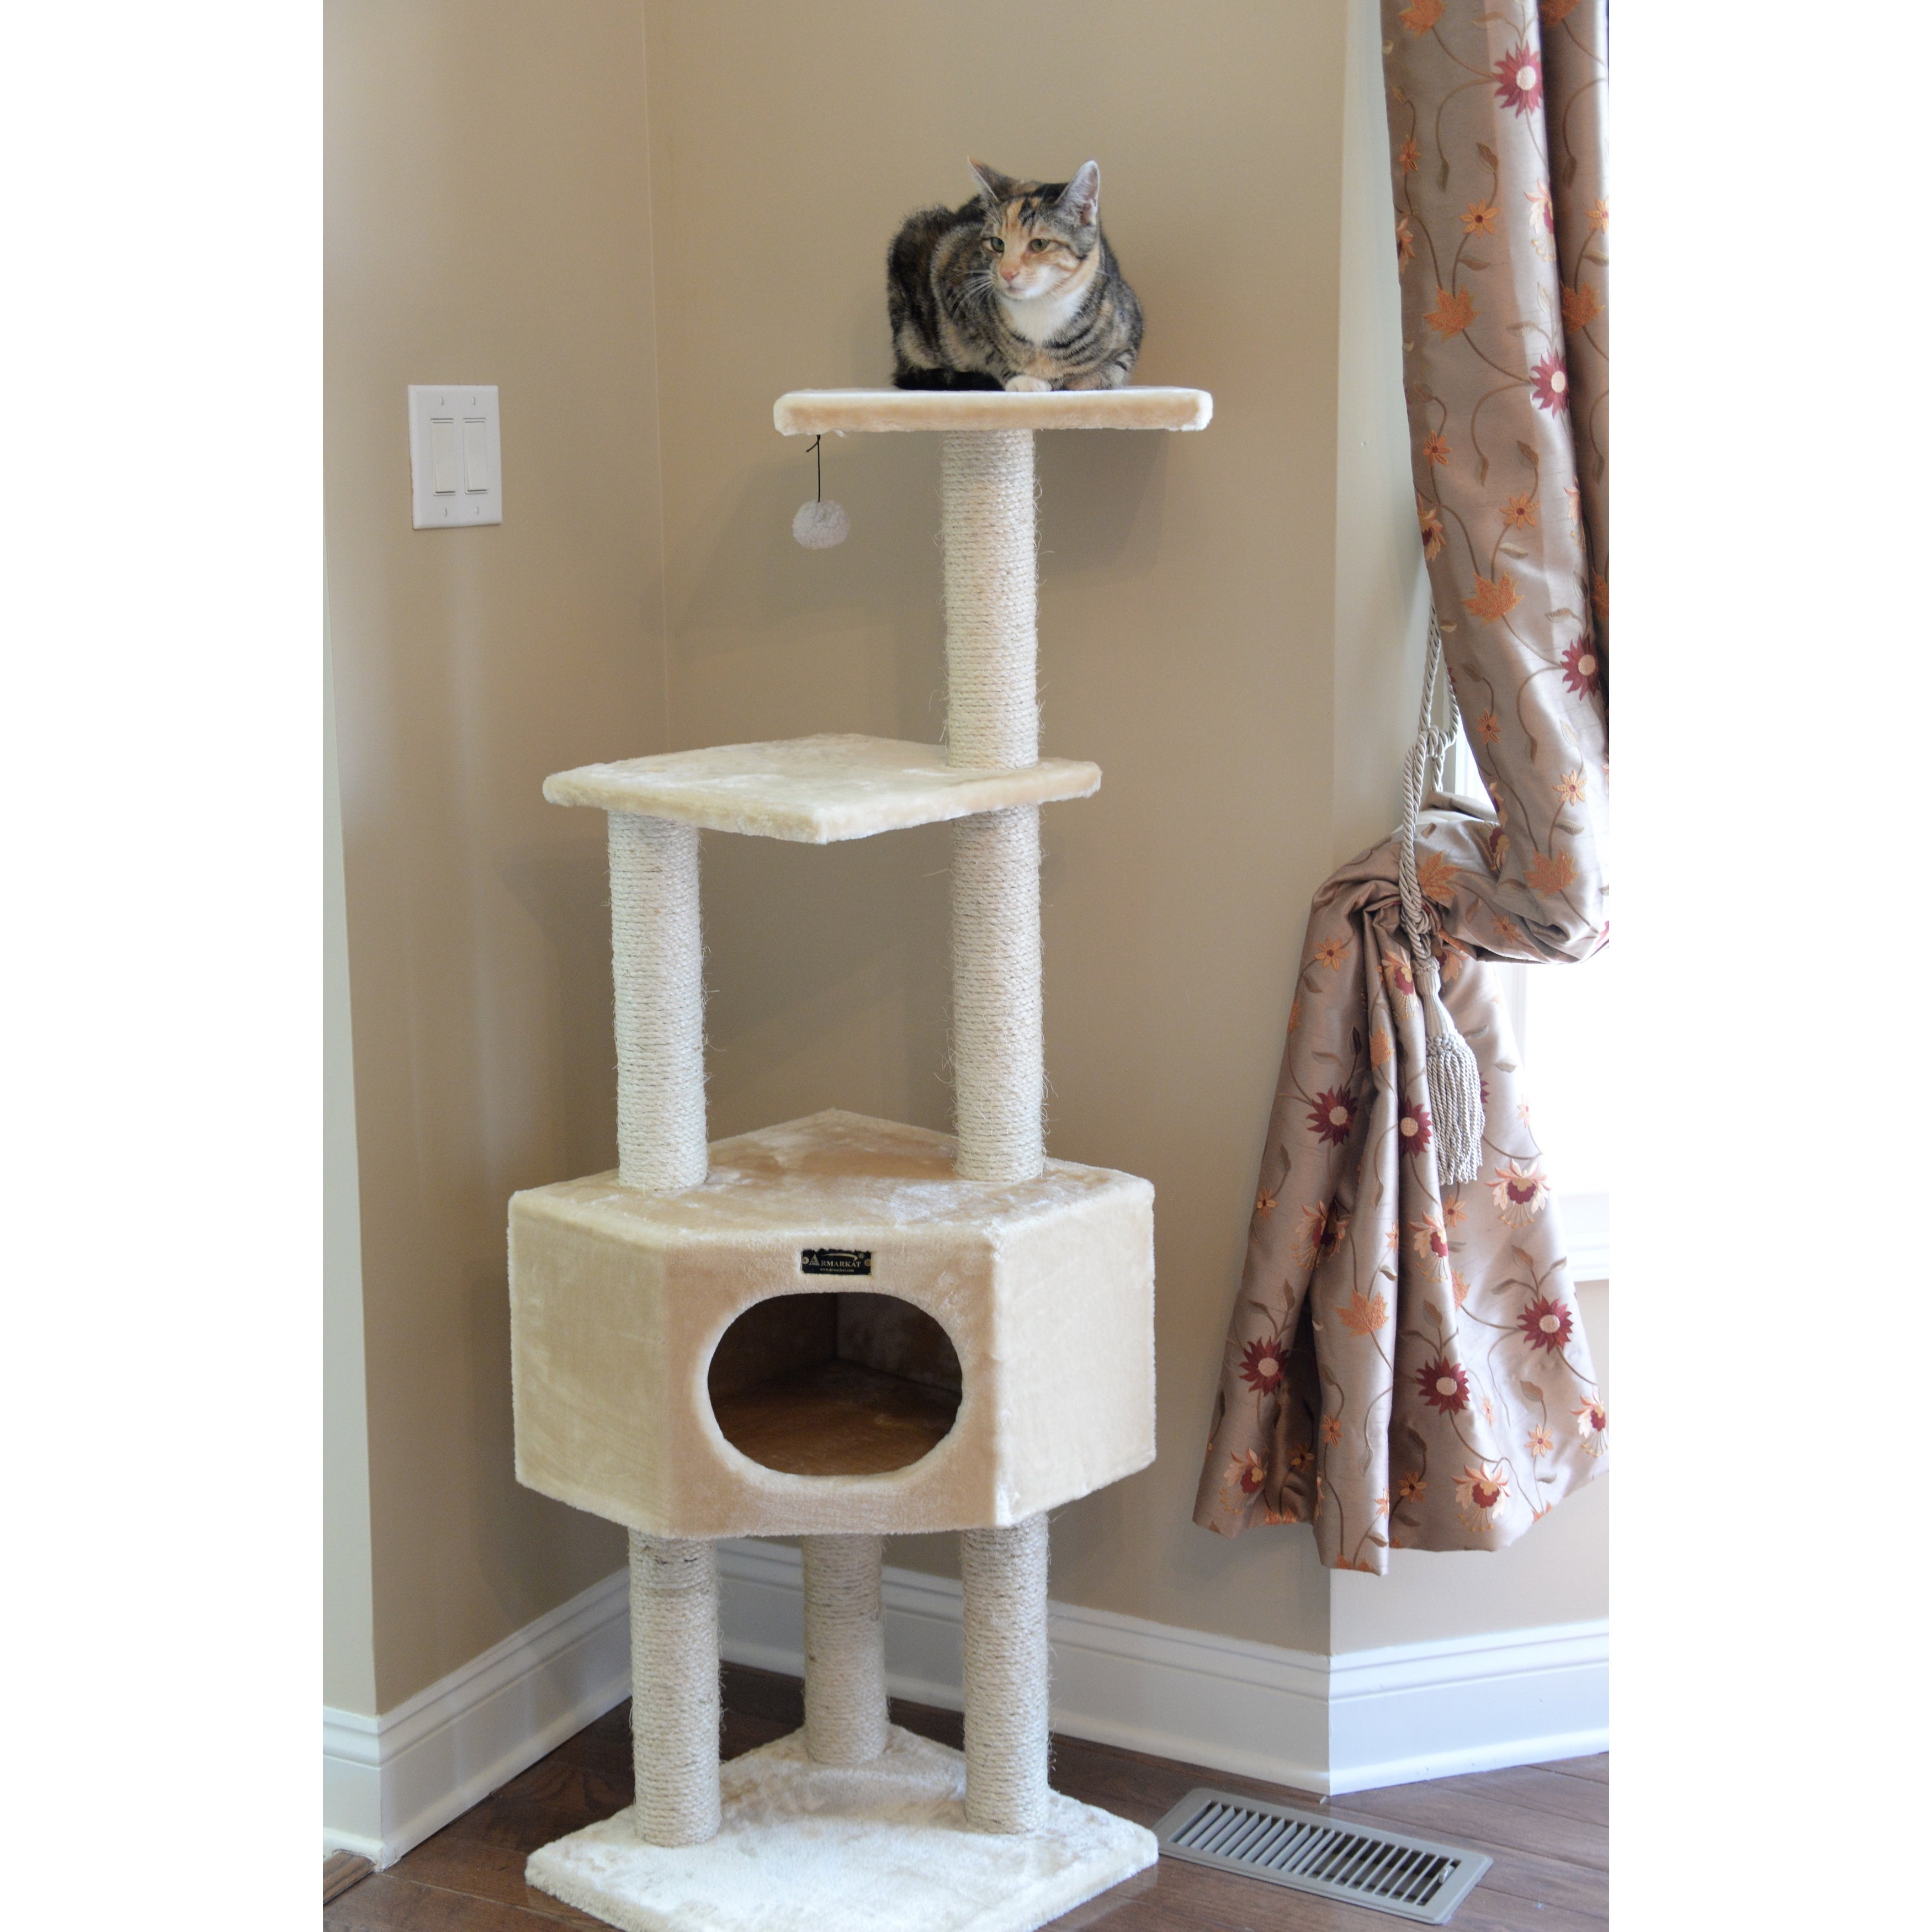 go club tree hammock free furniture supplies product overstock today brown pet high inch cat shipping with